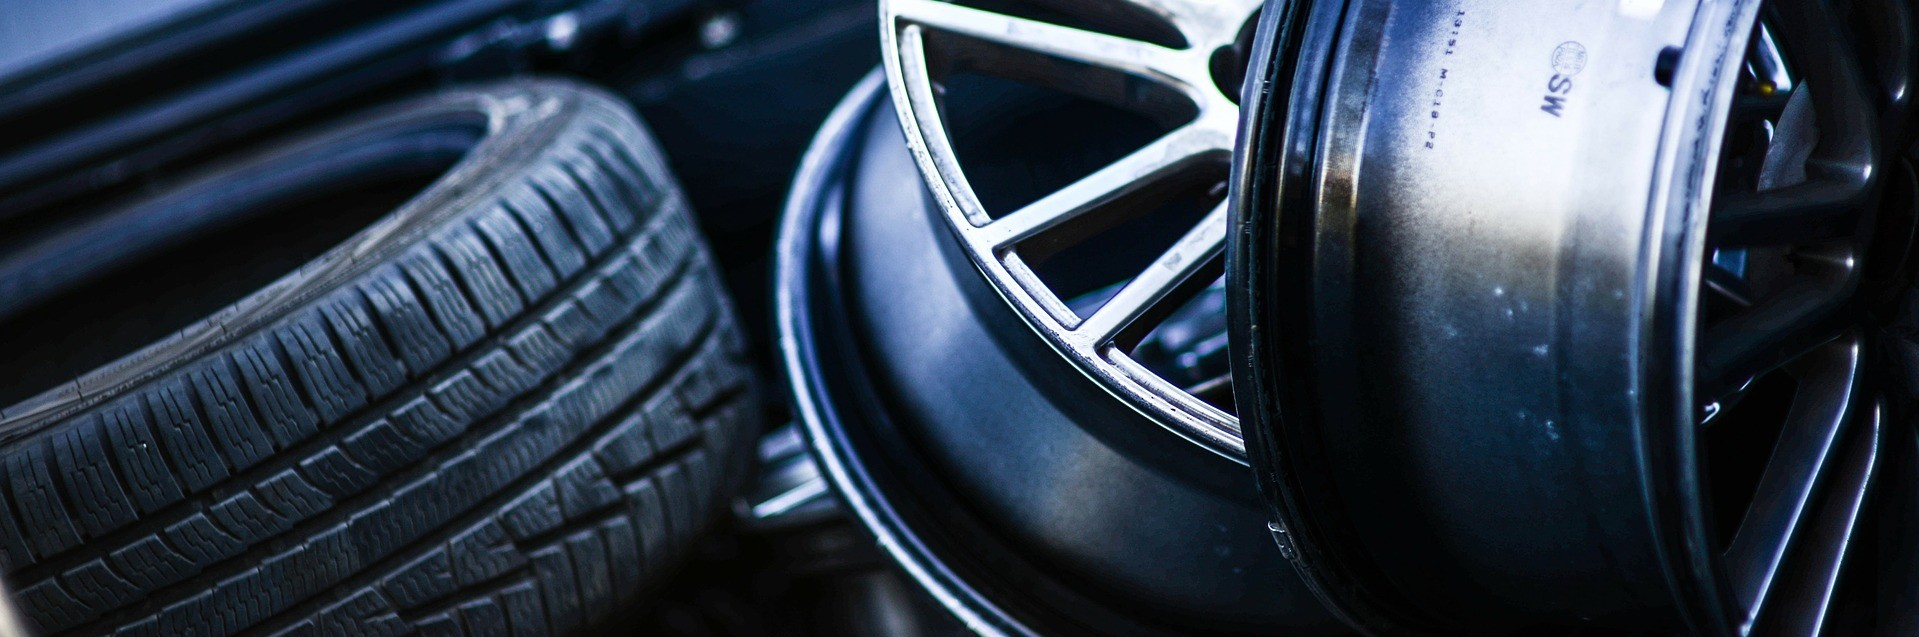 Extra Tire and Rims | Breast Cancer Car Donations